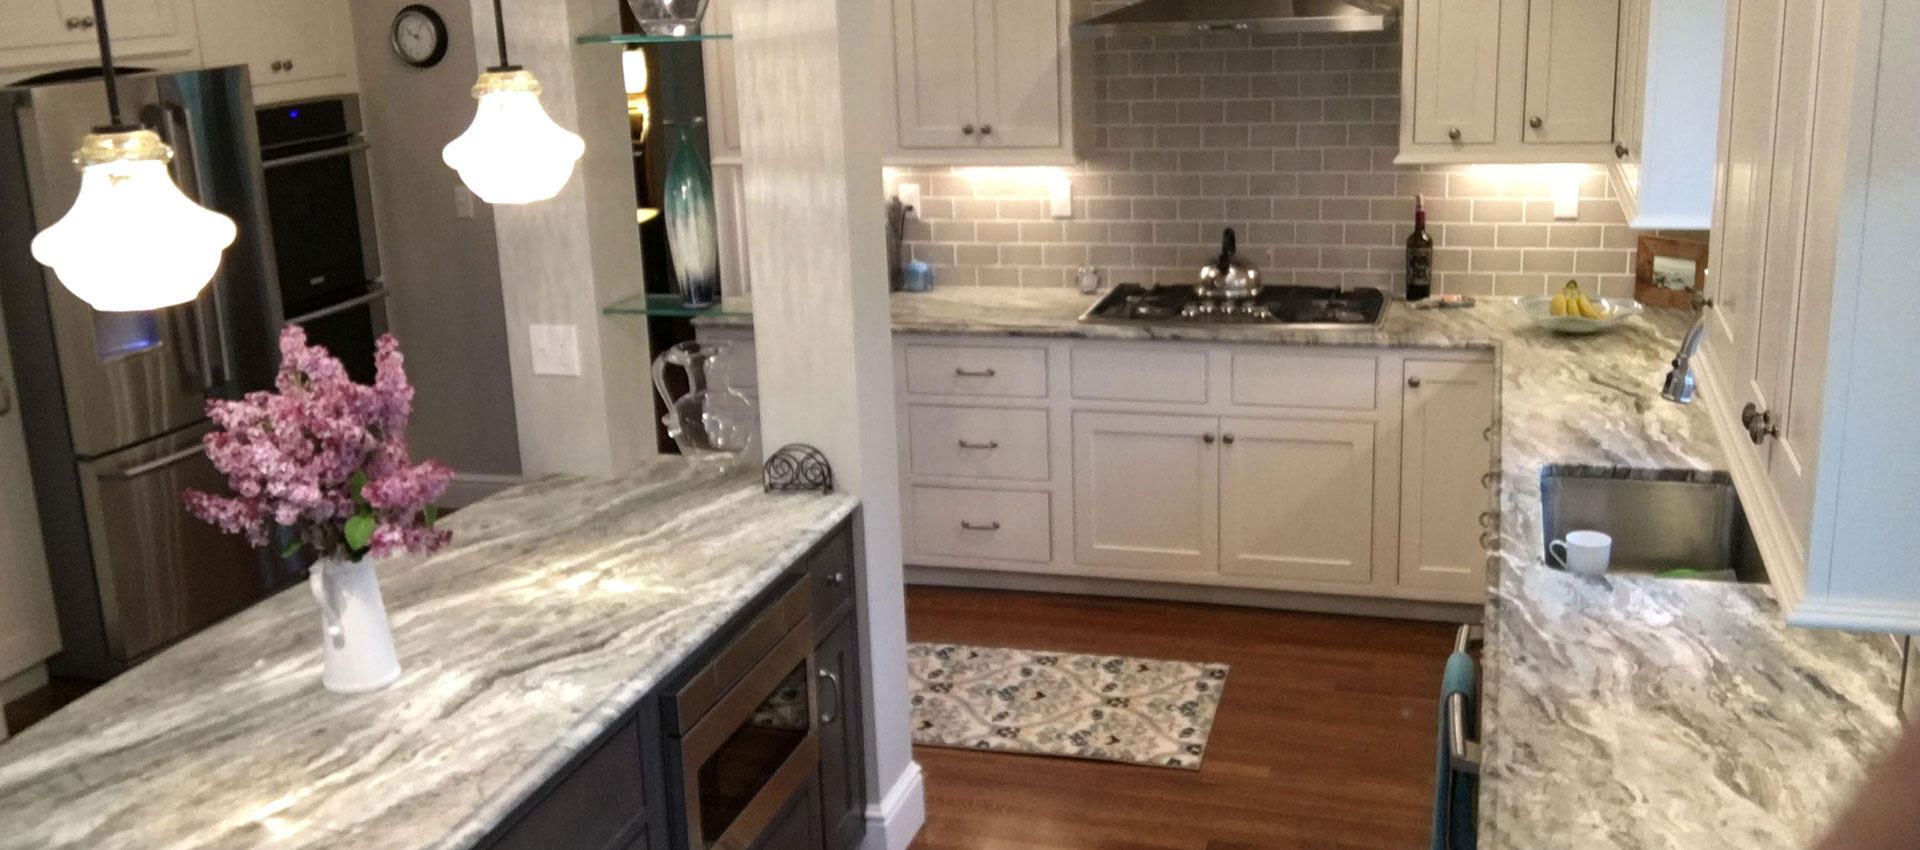 Kitchen Cabinetry Amp Remodeling In Fairfield County Ct